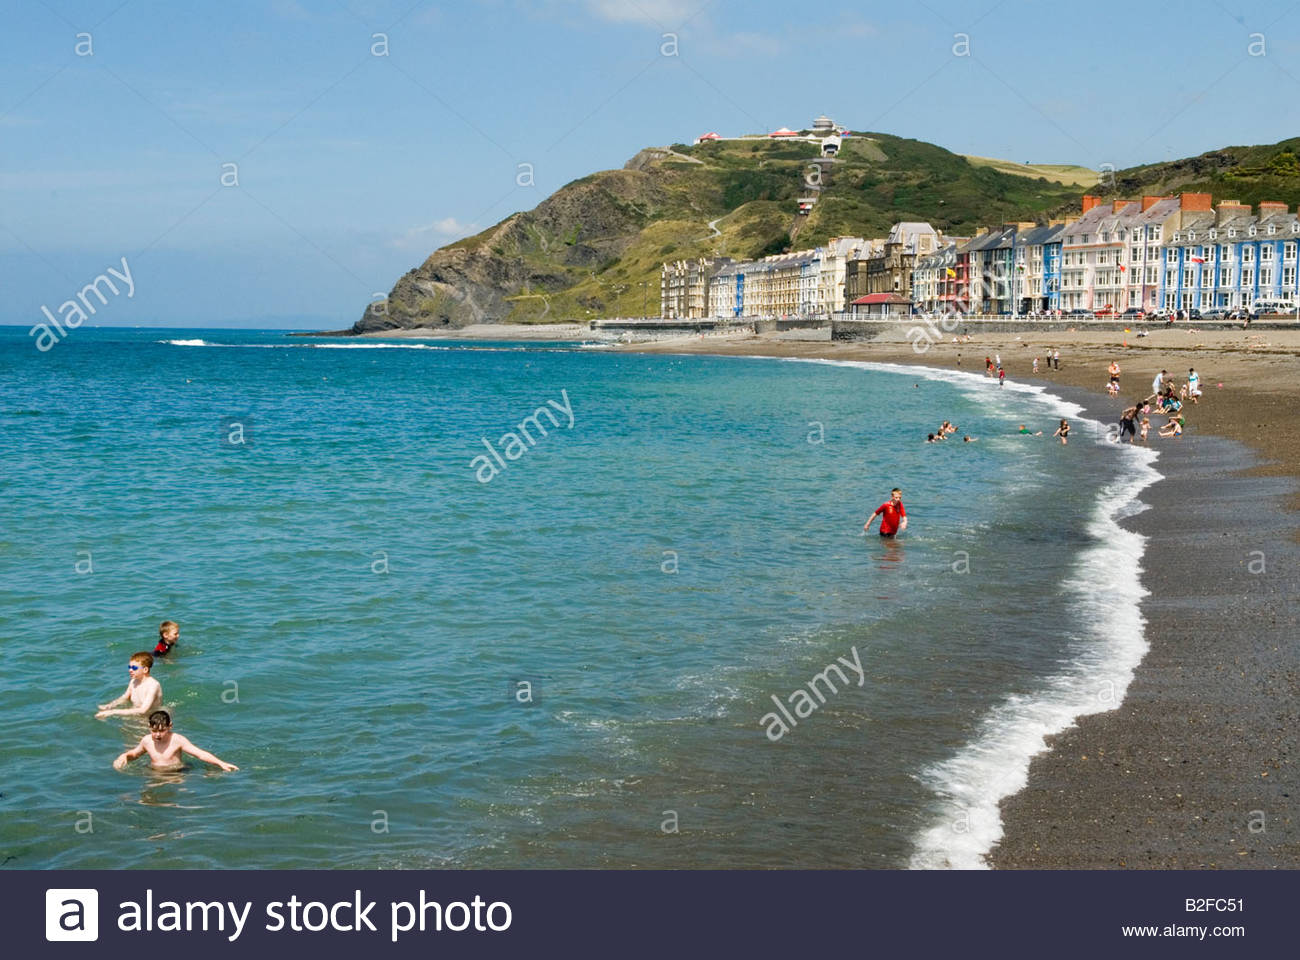 Constitution Hill Mid-Wales, Aberystwyth Wales Ceredigion west coast mid Wales UK Seaside ...